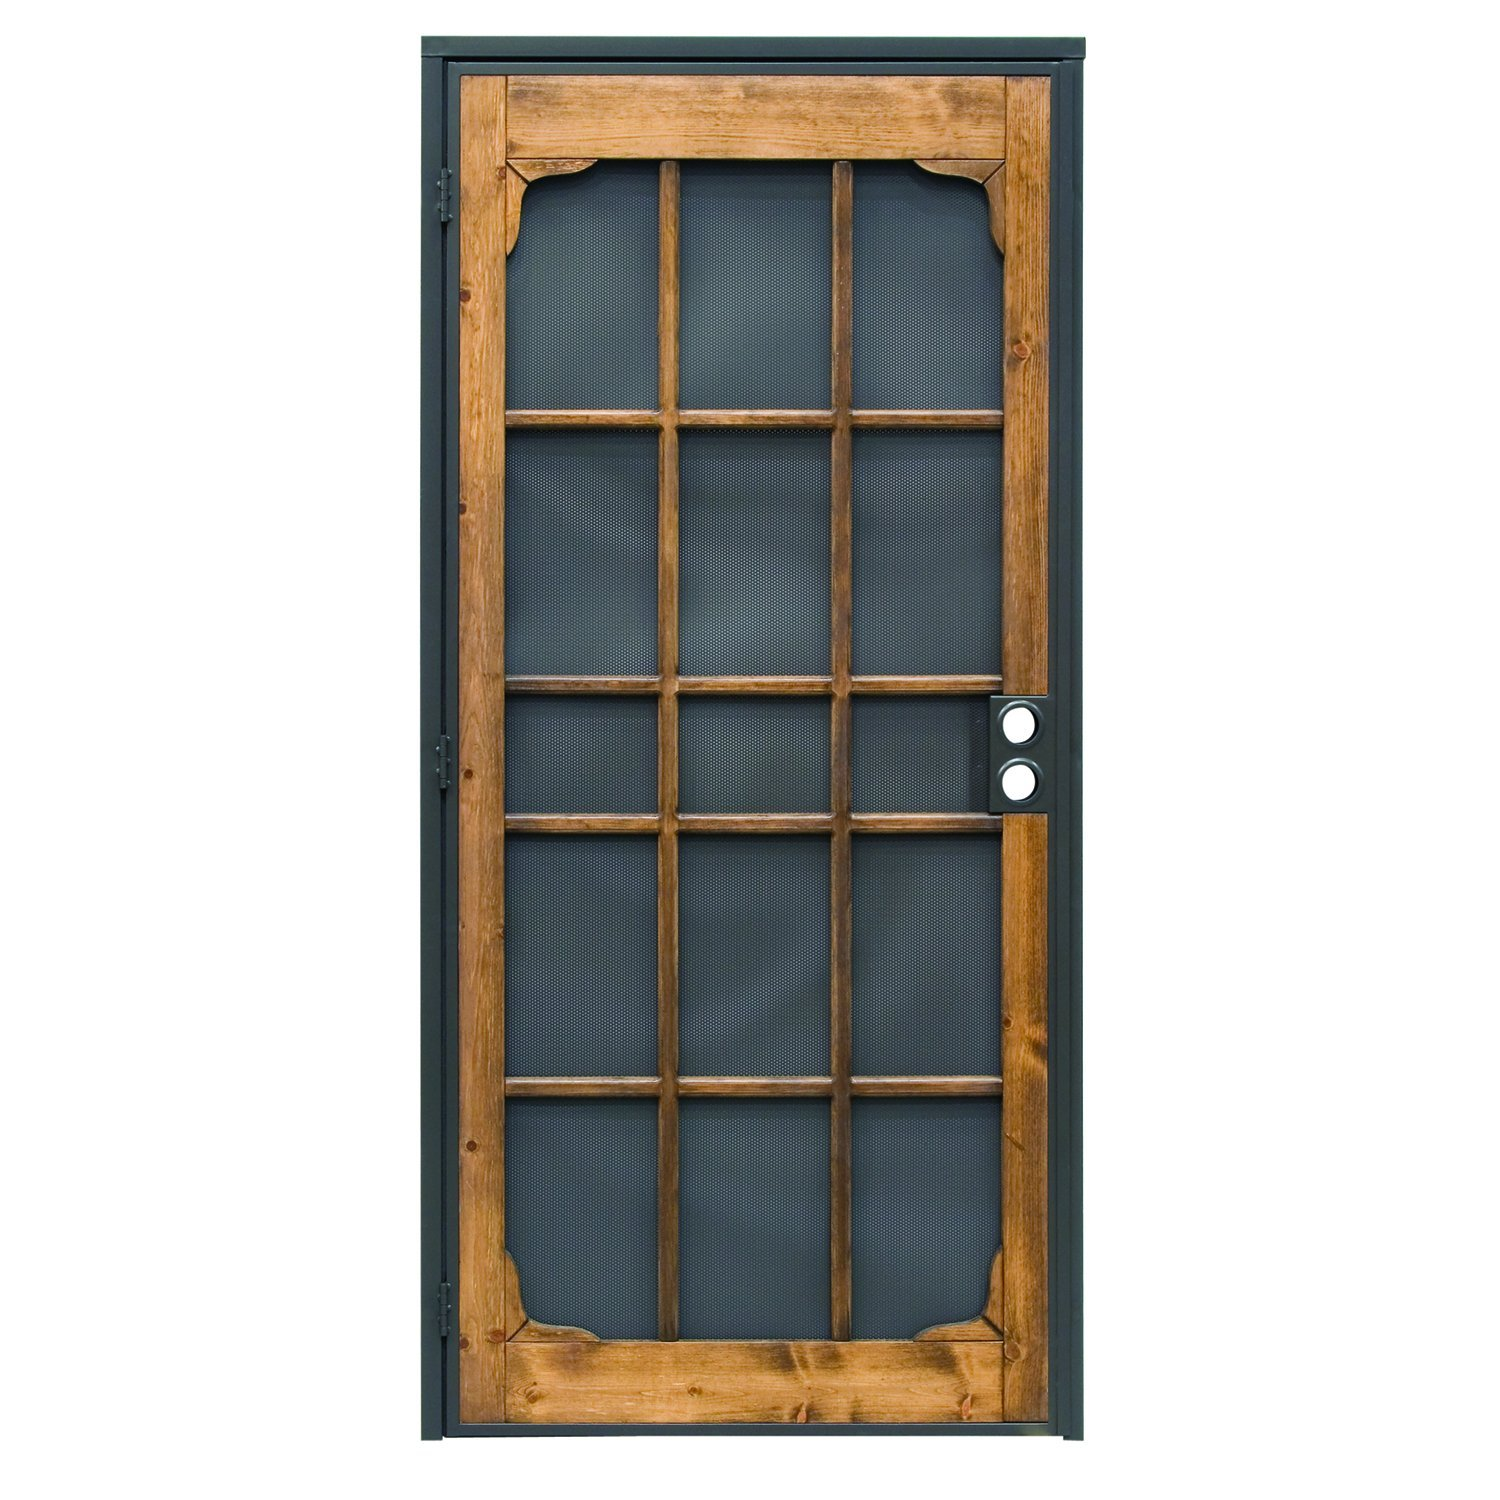 Prime-Line 3809BZ3068-I-WF Woodguard Steel Security Door - Traditional Screen Door Style with the Strength of a Steel Security Door - Steel and Wood Construction, Non-Handed, Bronze by PRIME-LINE